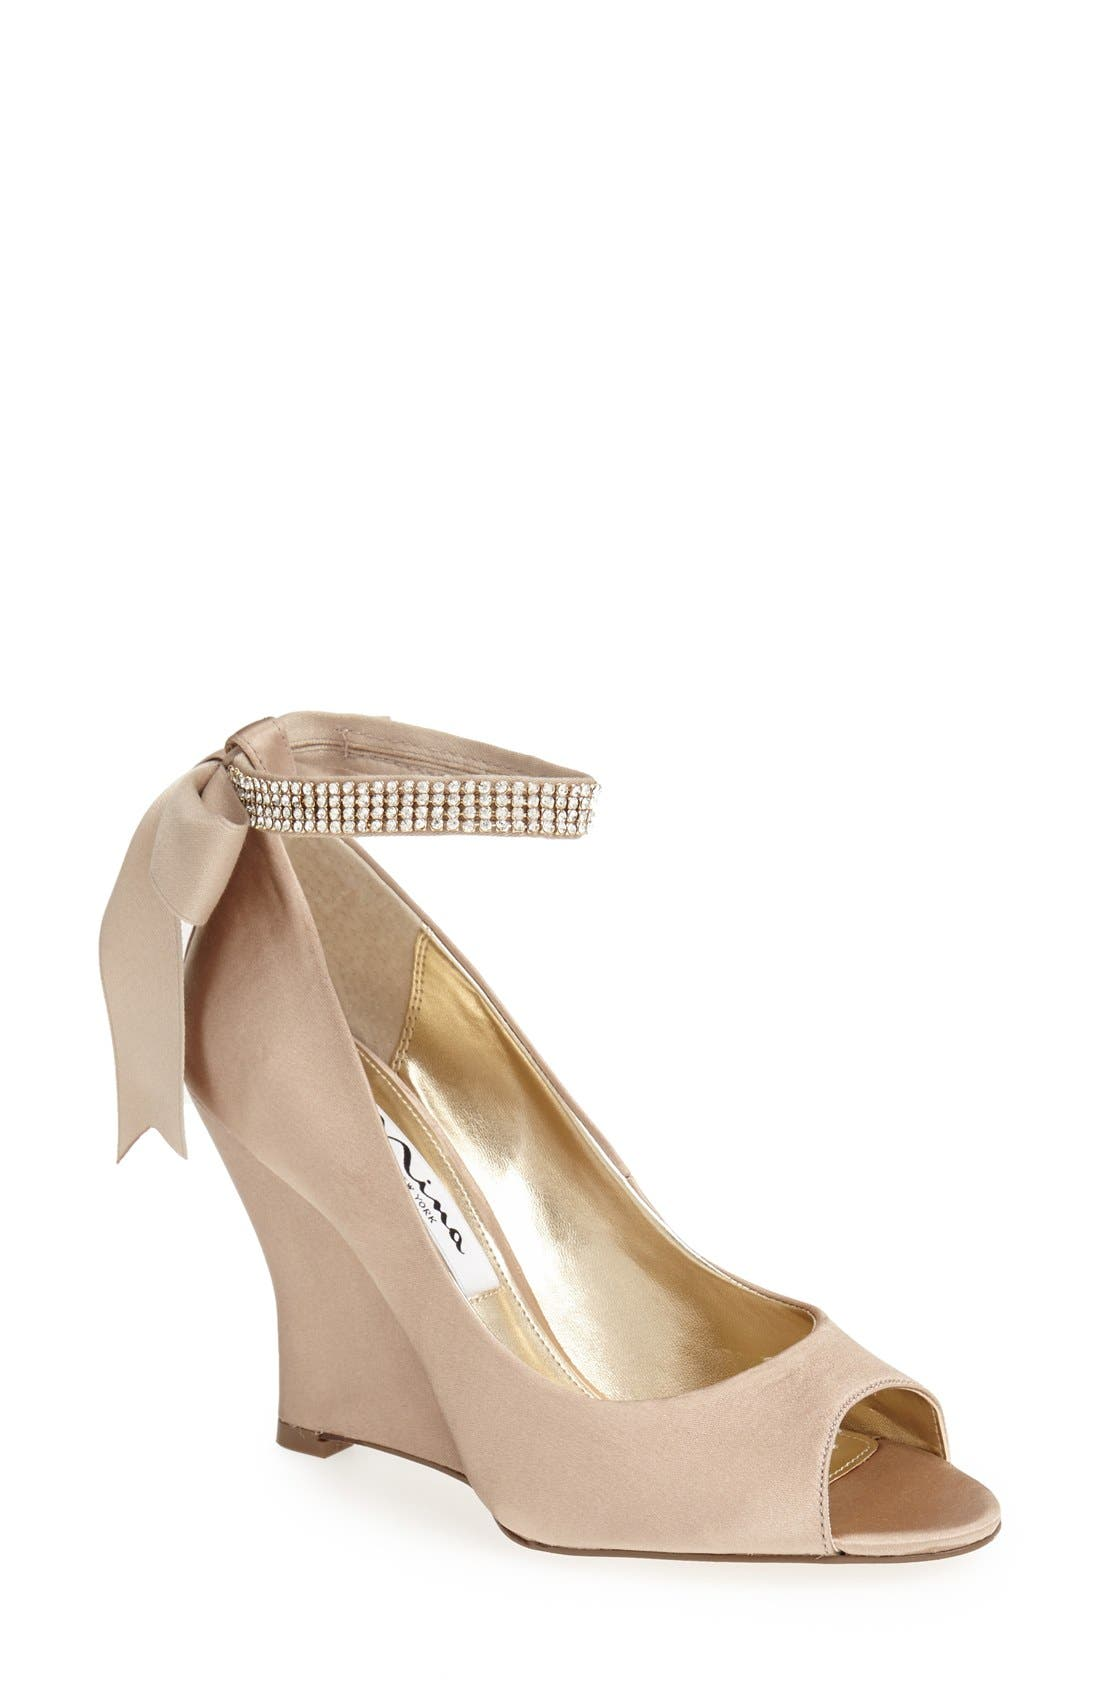 'Emma' Crystal Embellished Ankle Strap Pump,                         Main,                         color, 291